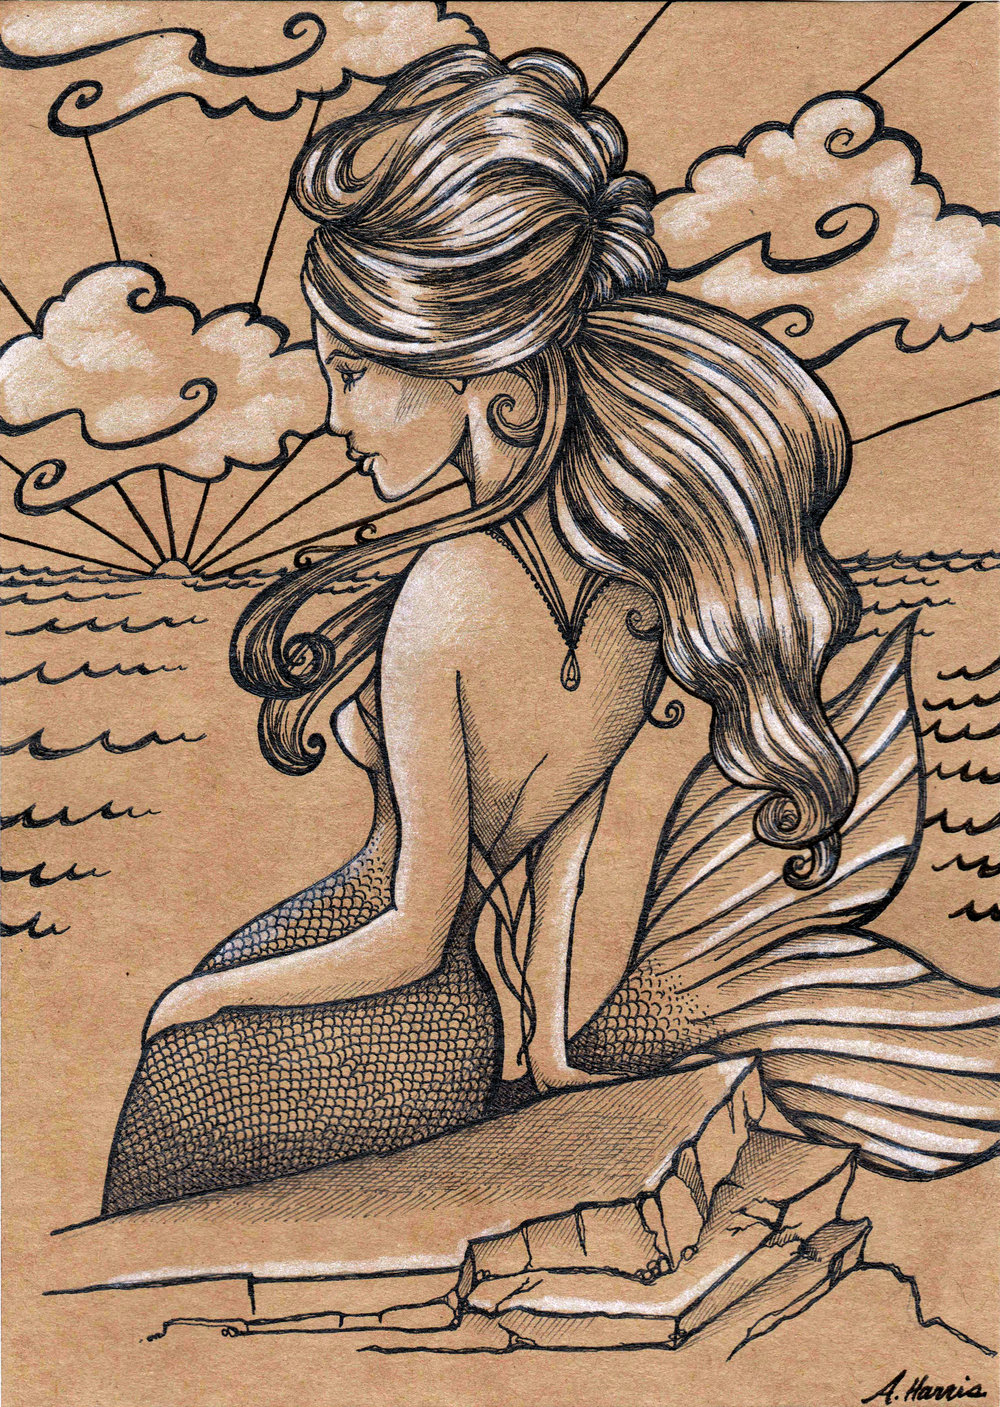 028_MermaidDream_inkedfaithart.jpg